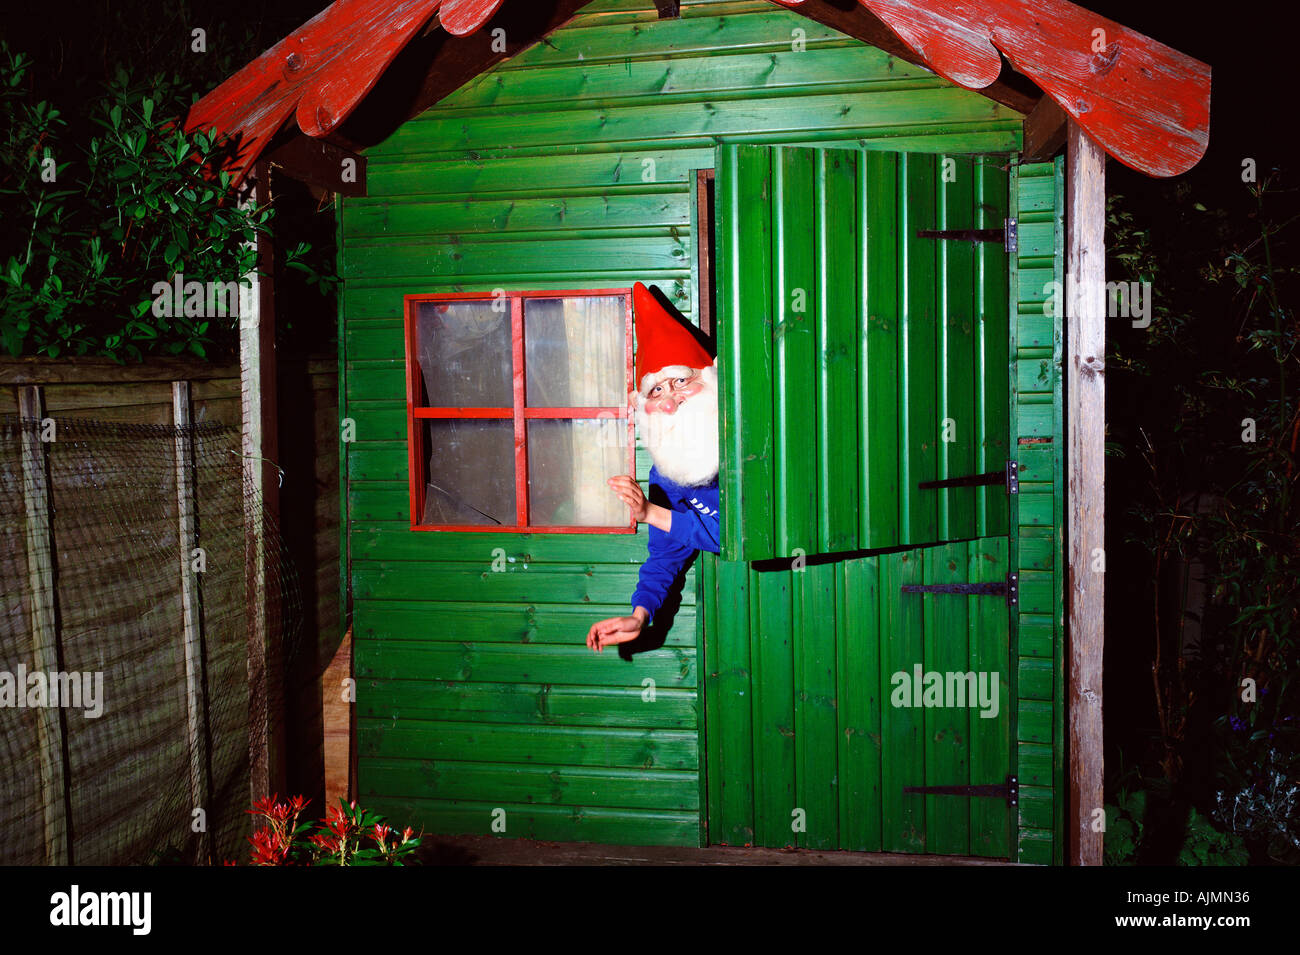 garden gnome inside shed